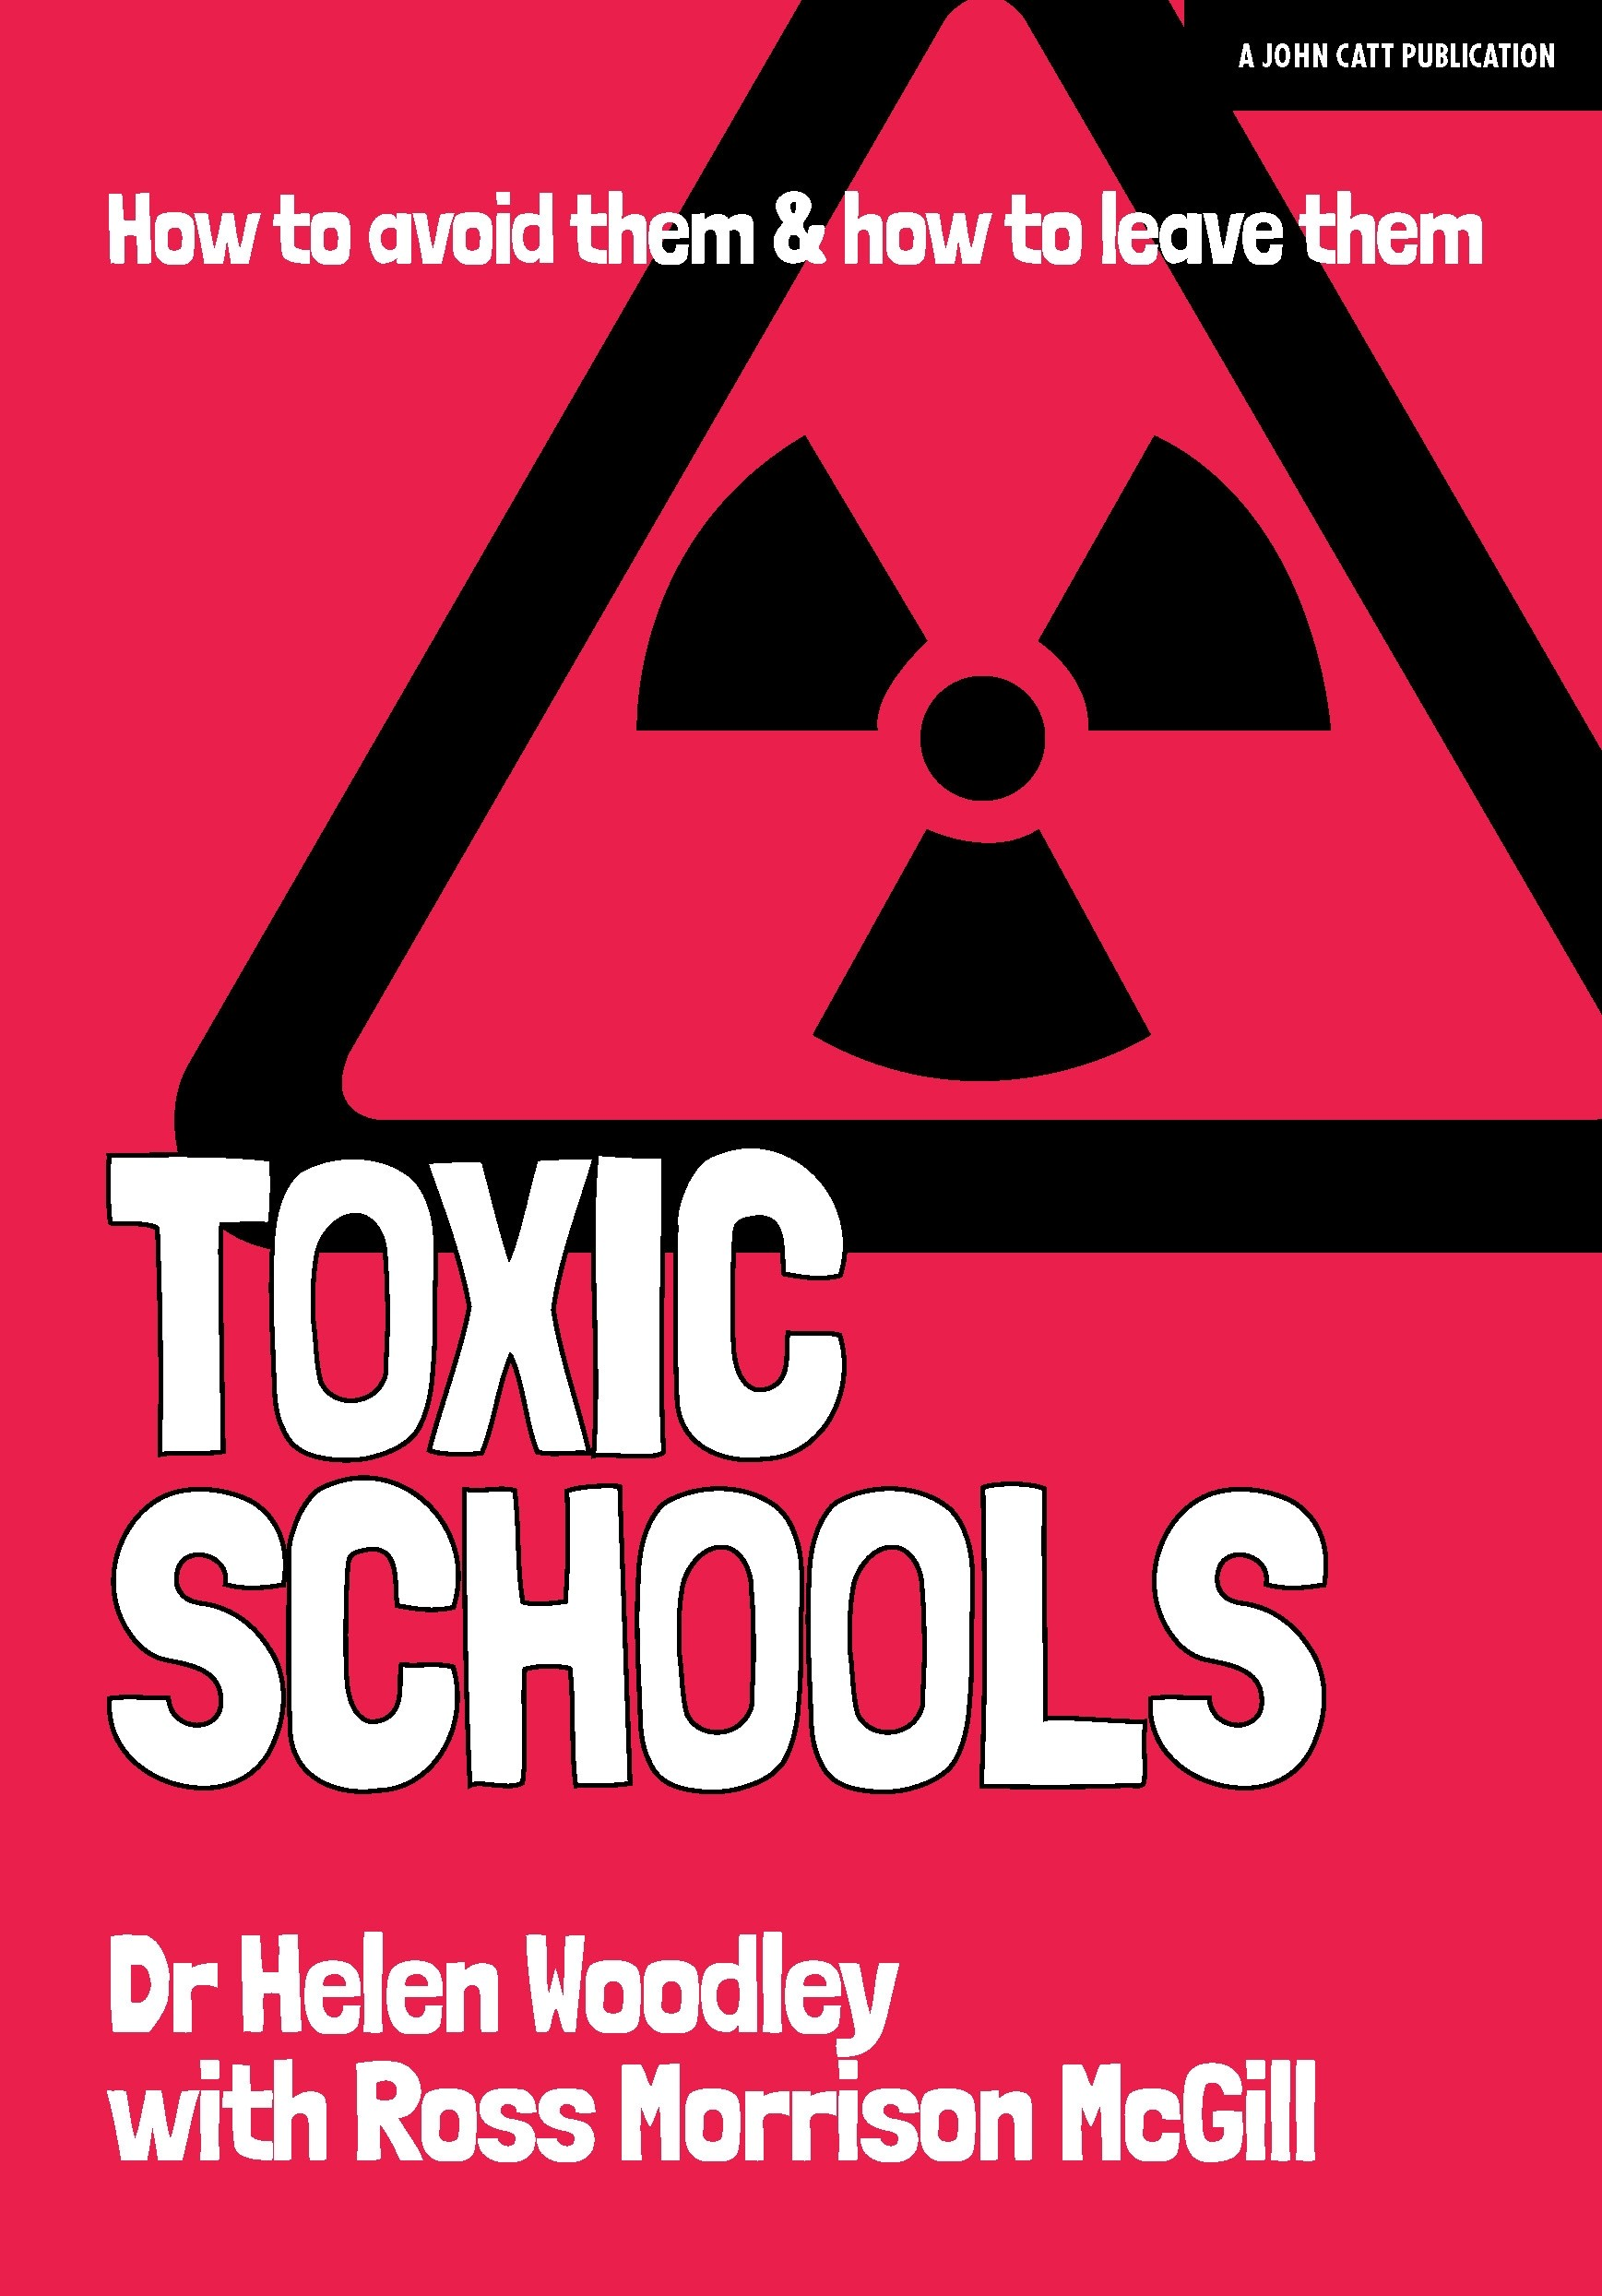 Toxic Schools: how to avoid them and how to leave them